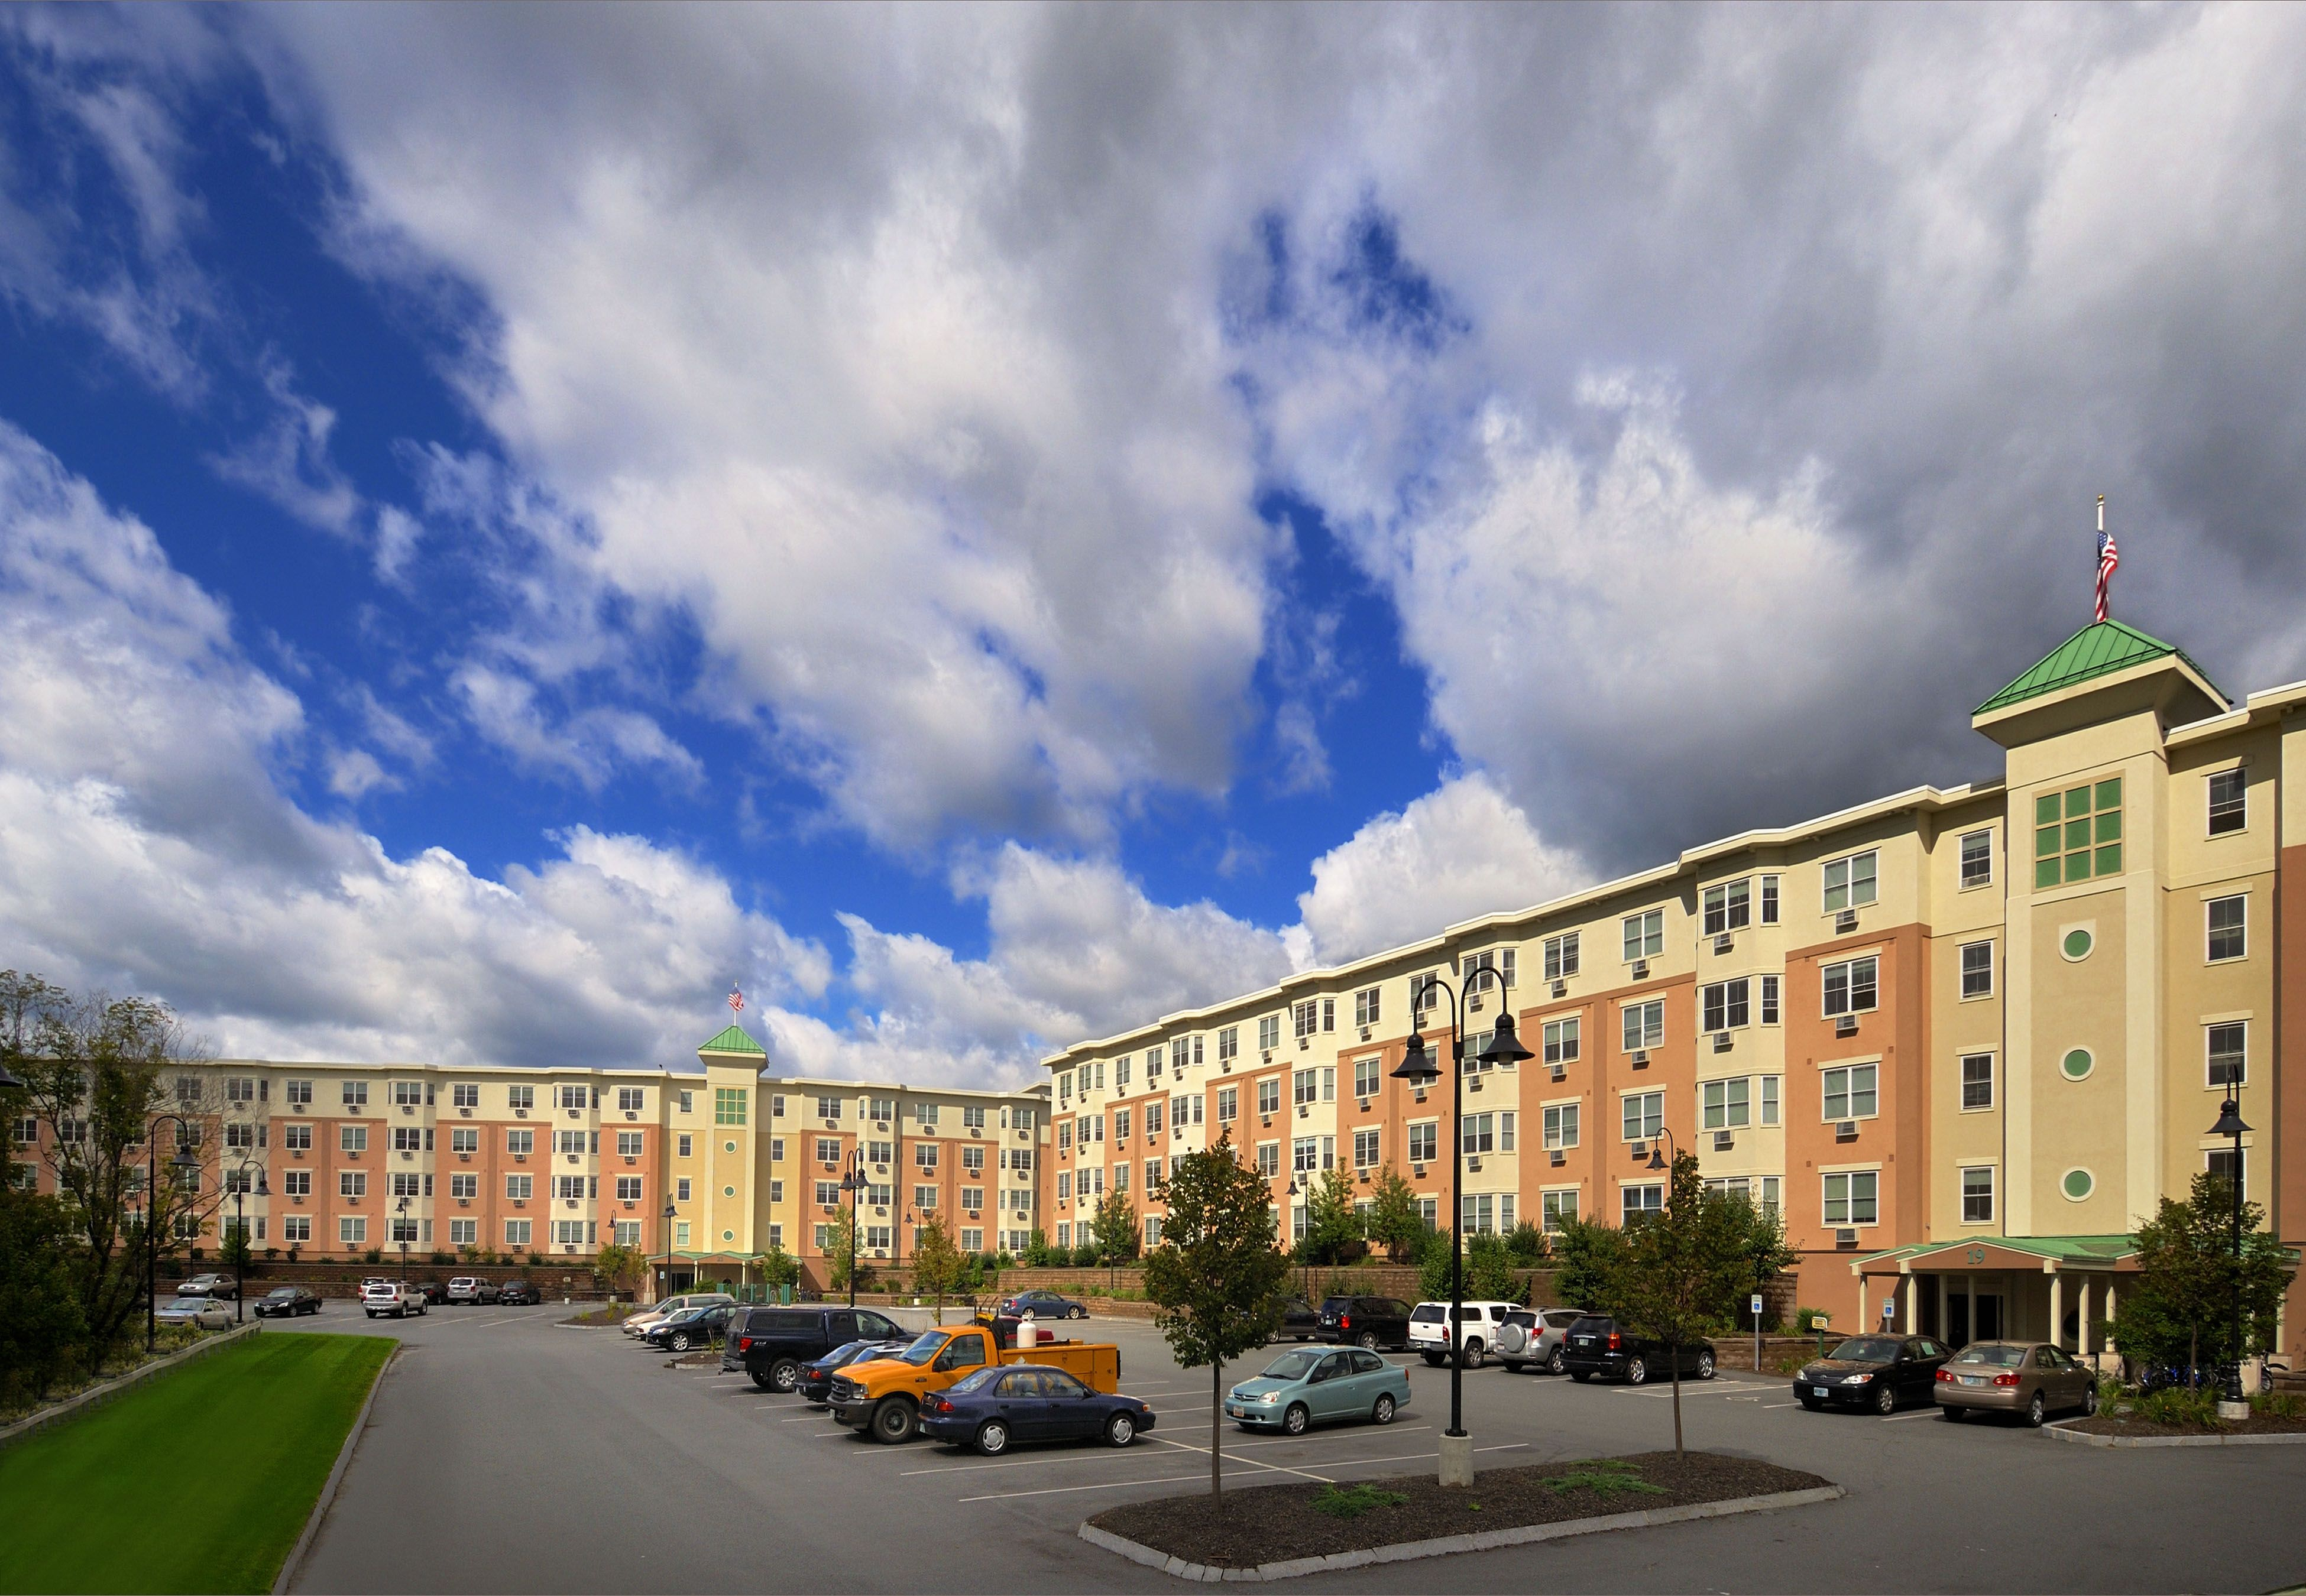 Located in Lebanon NH Emerson Place has 160 apartment homes